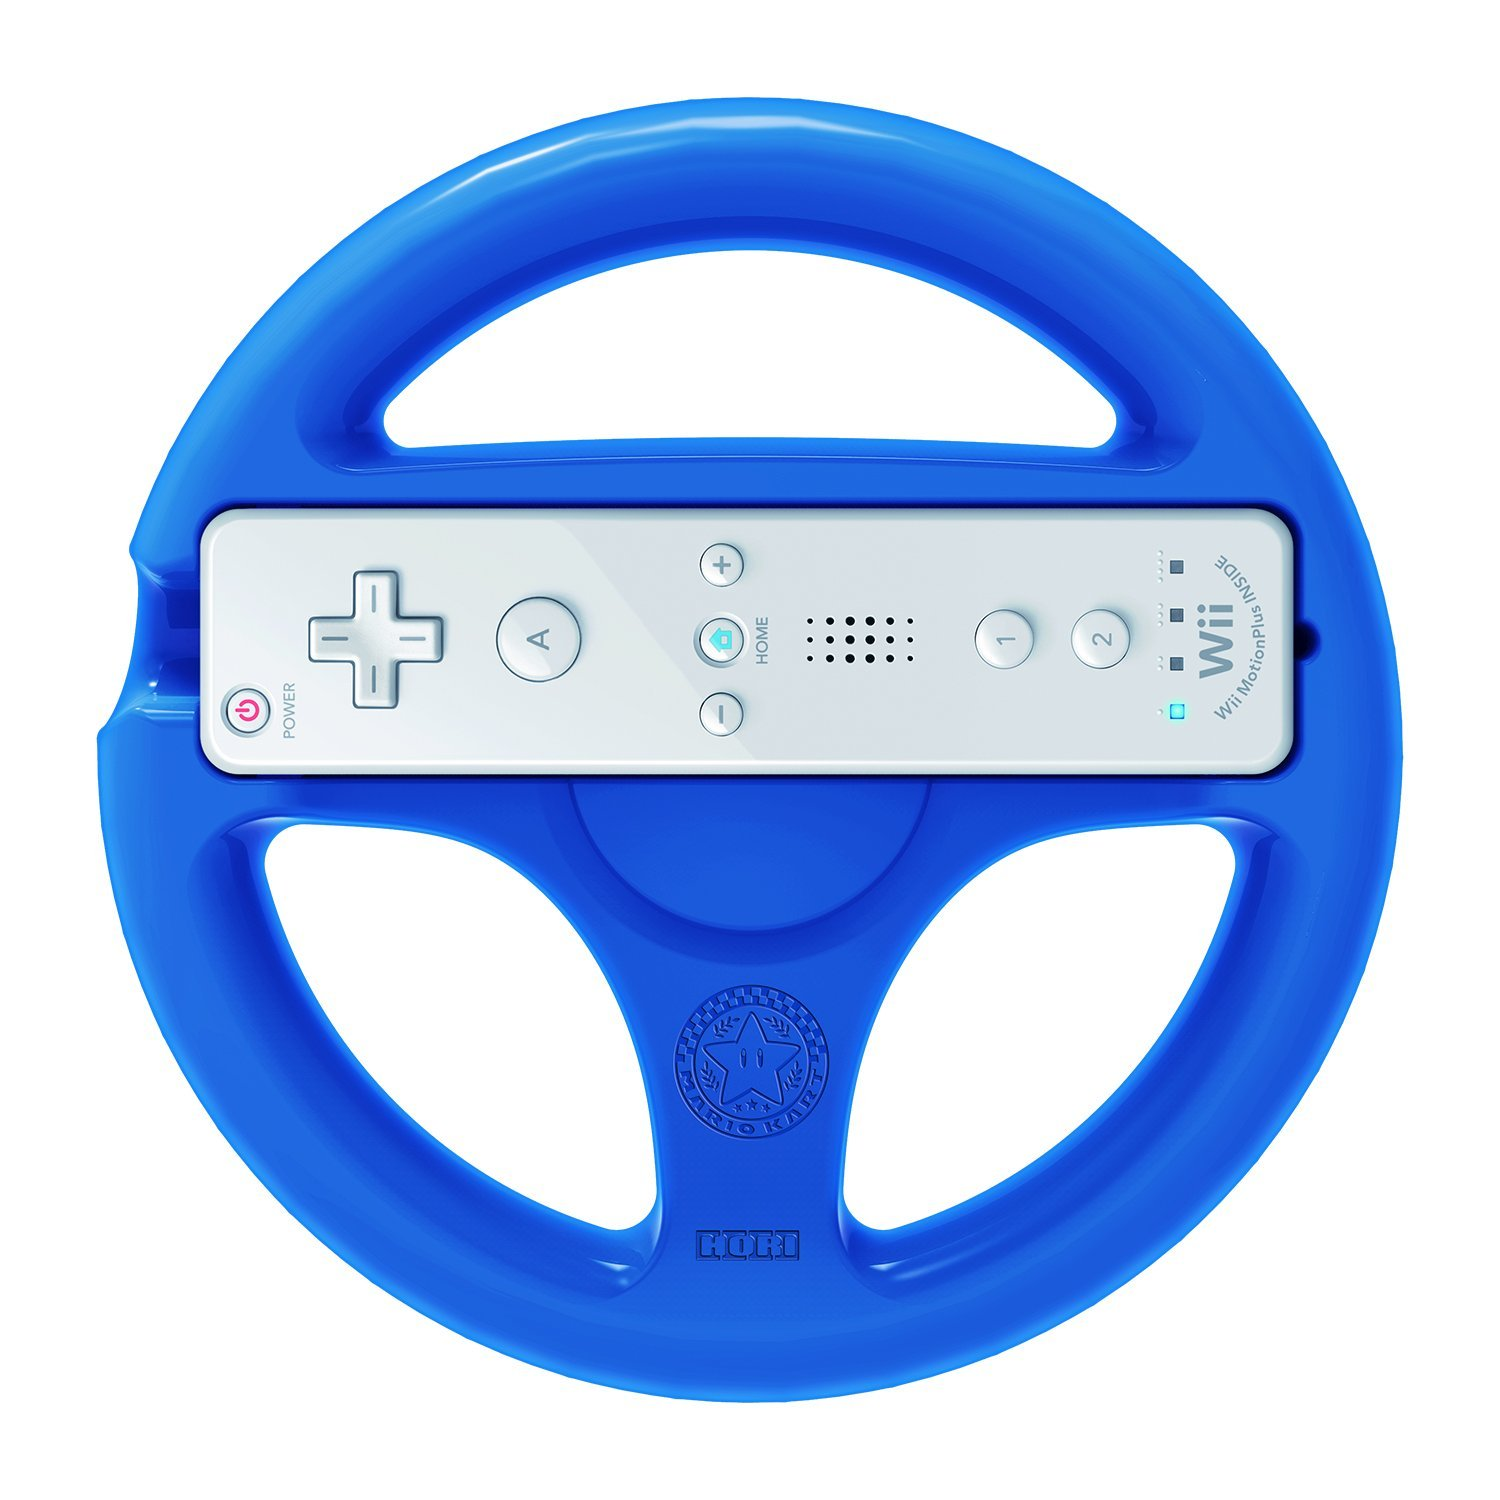 Mario kart 8 for sale - Toad Wheel 2